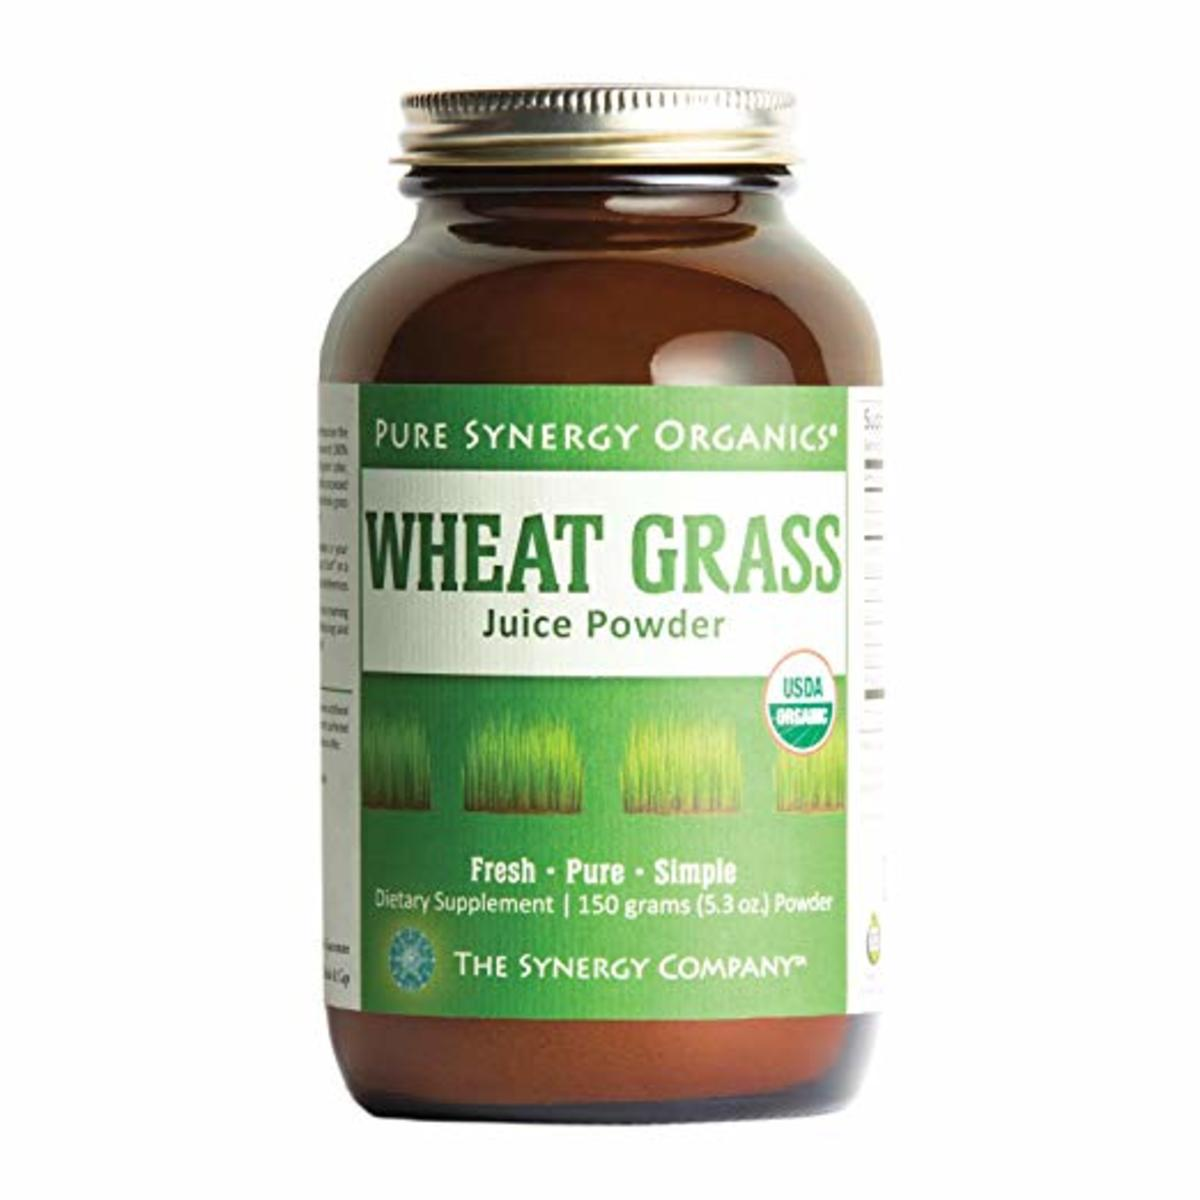 35 amazing wheatgrass benefits, pure synergy organics